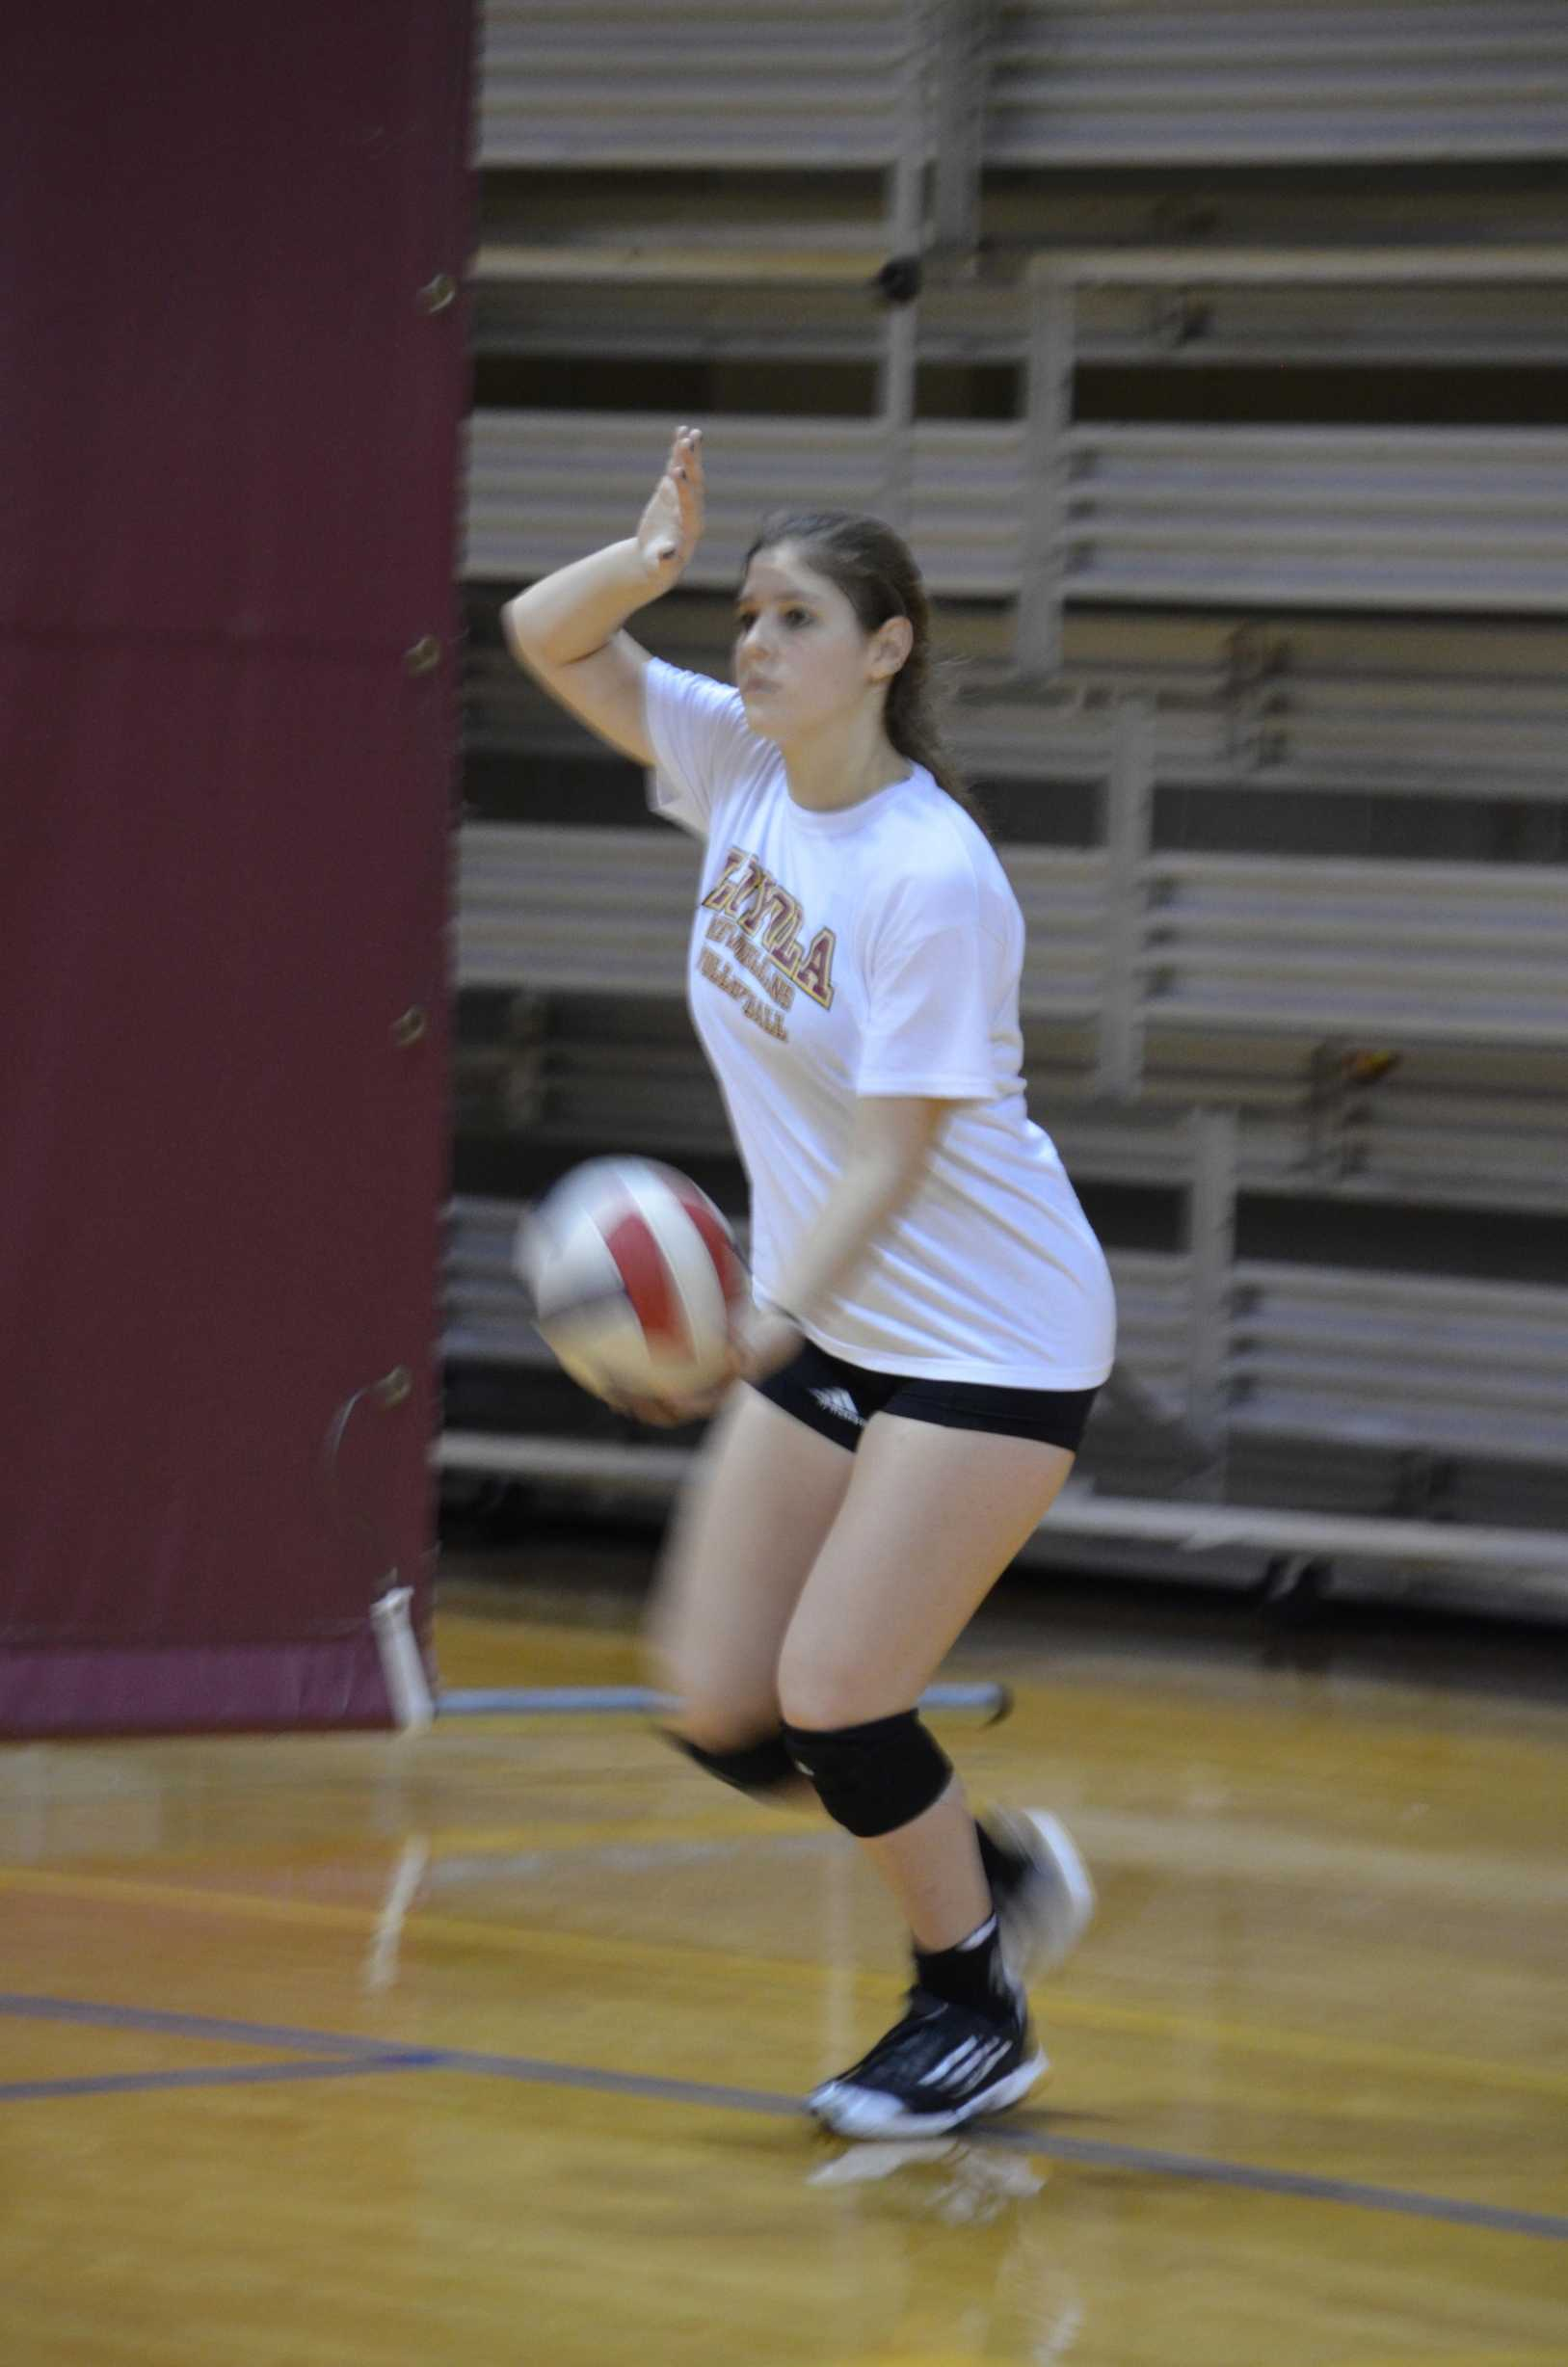 Daniela Leal prepares to serve the ball at a recent practice at the Rec plex. Leal  was offered a roster spot by first year head coach Margot Fredrick .